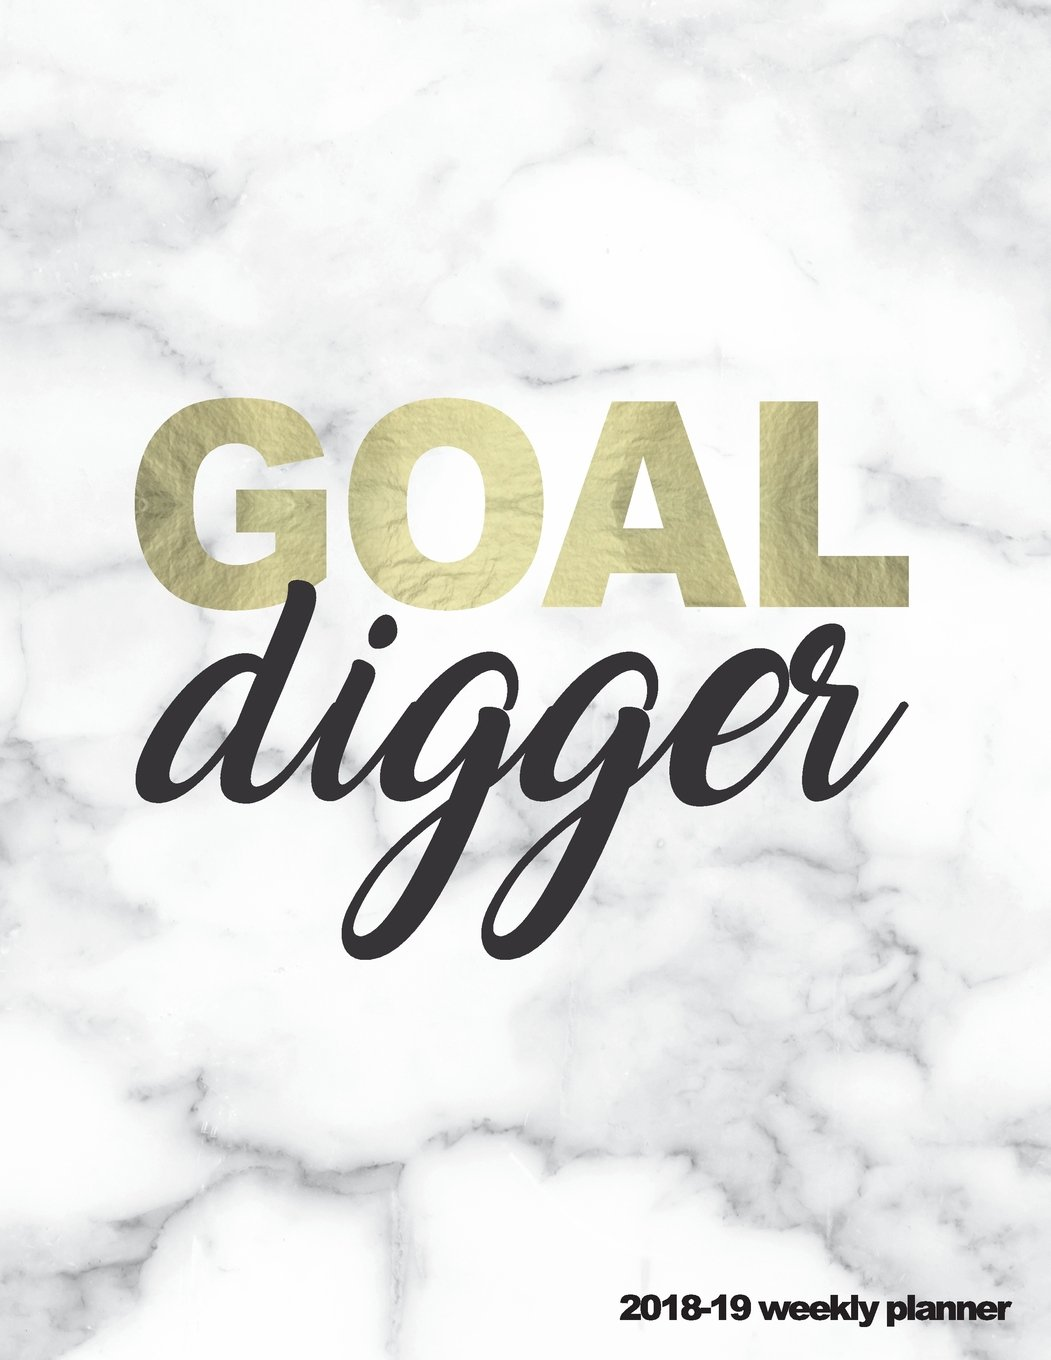 Goal Digger 2018-19 Weekly Planner: Marble + Gold 18-Month Weekly Planner 8.5 x 11 in || July 2018 - Dec 2019 Weekly View || To-Do Lists, Inspirational Quotes + Much More (Marble Planners) (Volume 5) Paperback – July 12, 2018 Pretty Planners Inspiring Plan